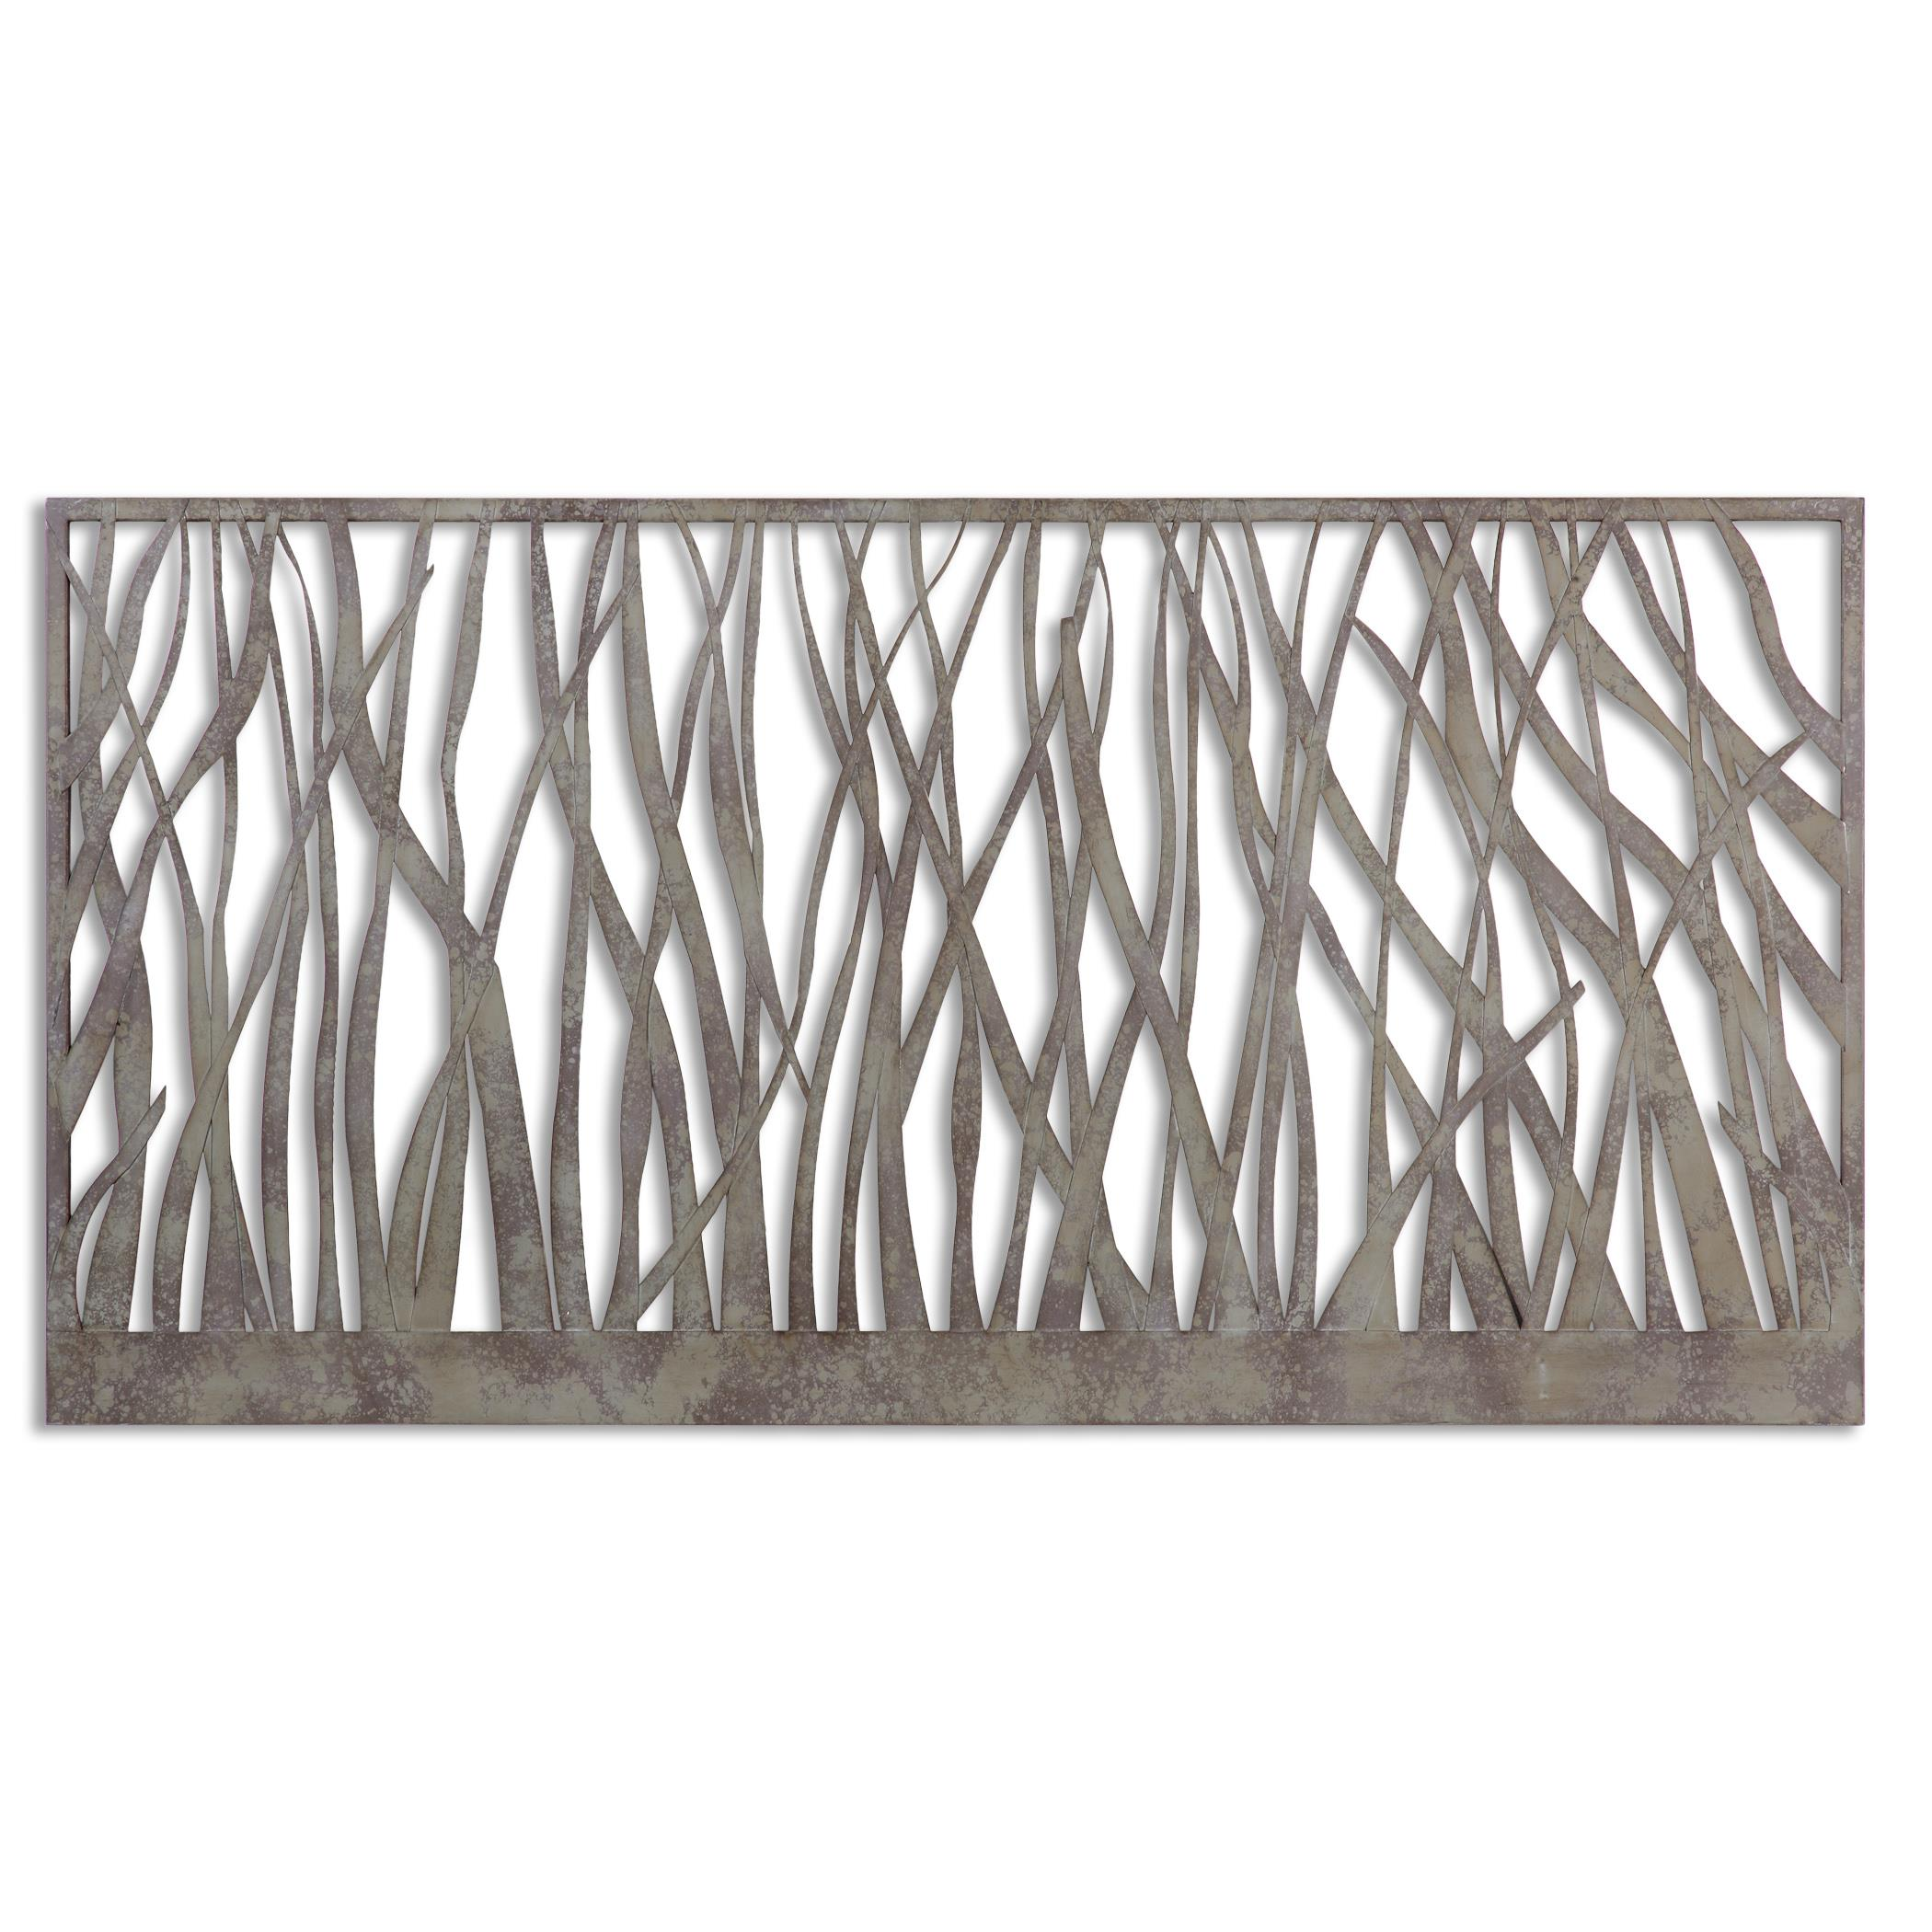 Uttermost Alternative Wall Decor Amadahy Metal Wall Art - Item Number: 13931